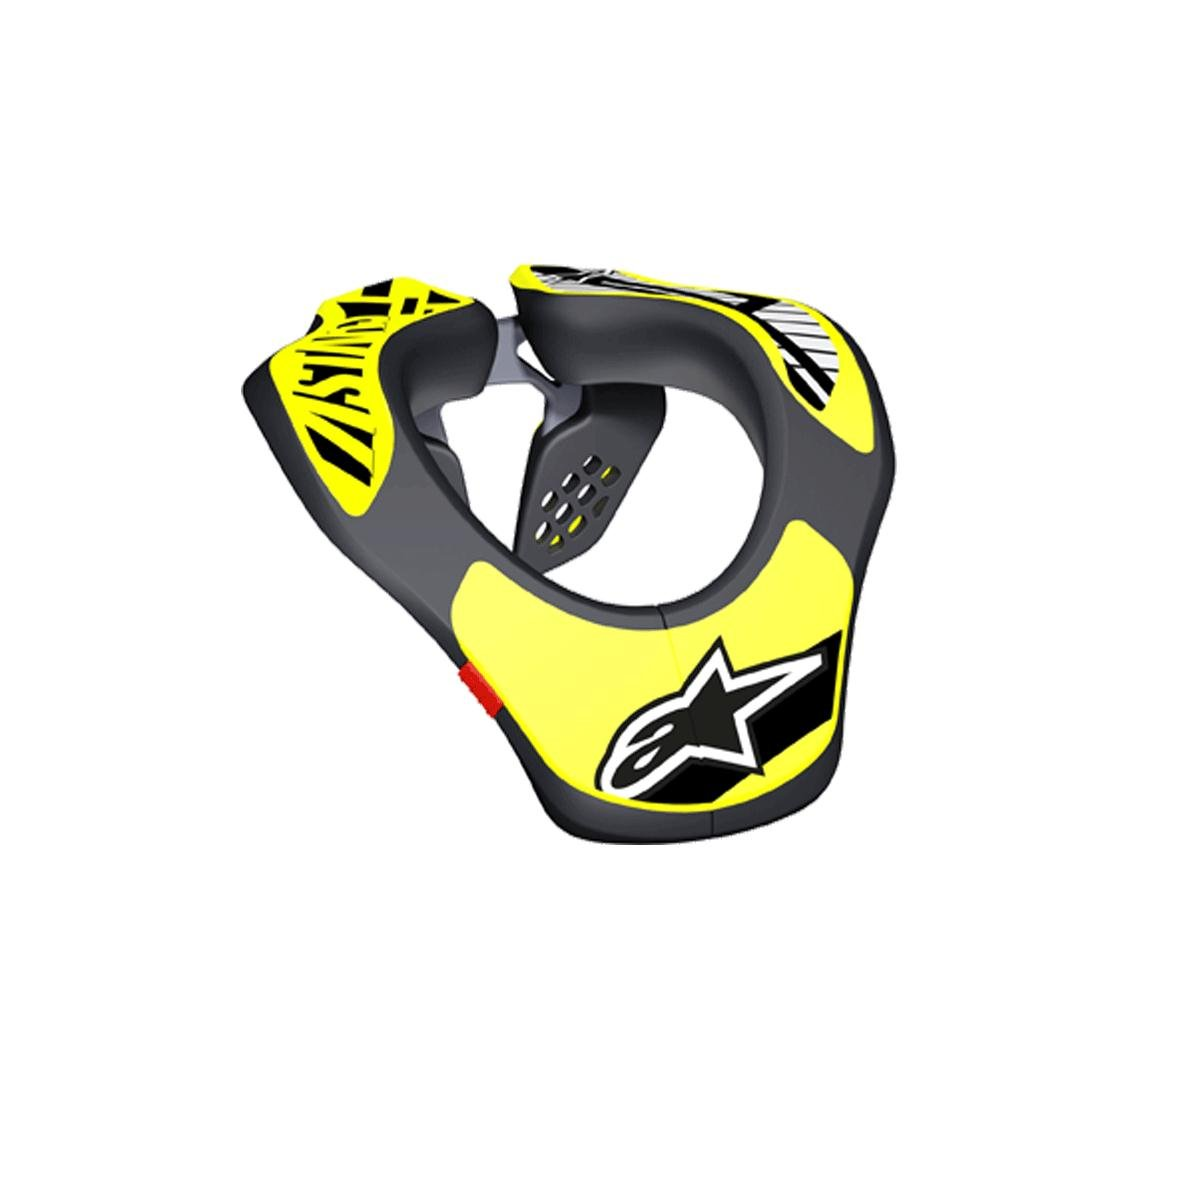 Alpinestars Youth Neck Support Nero Giallo Fluo Os 1